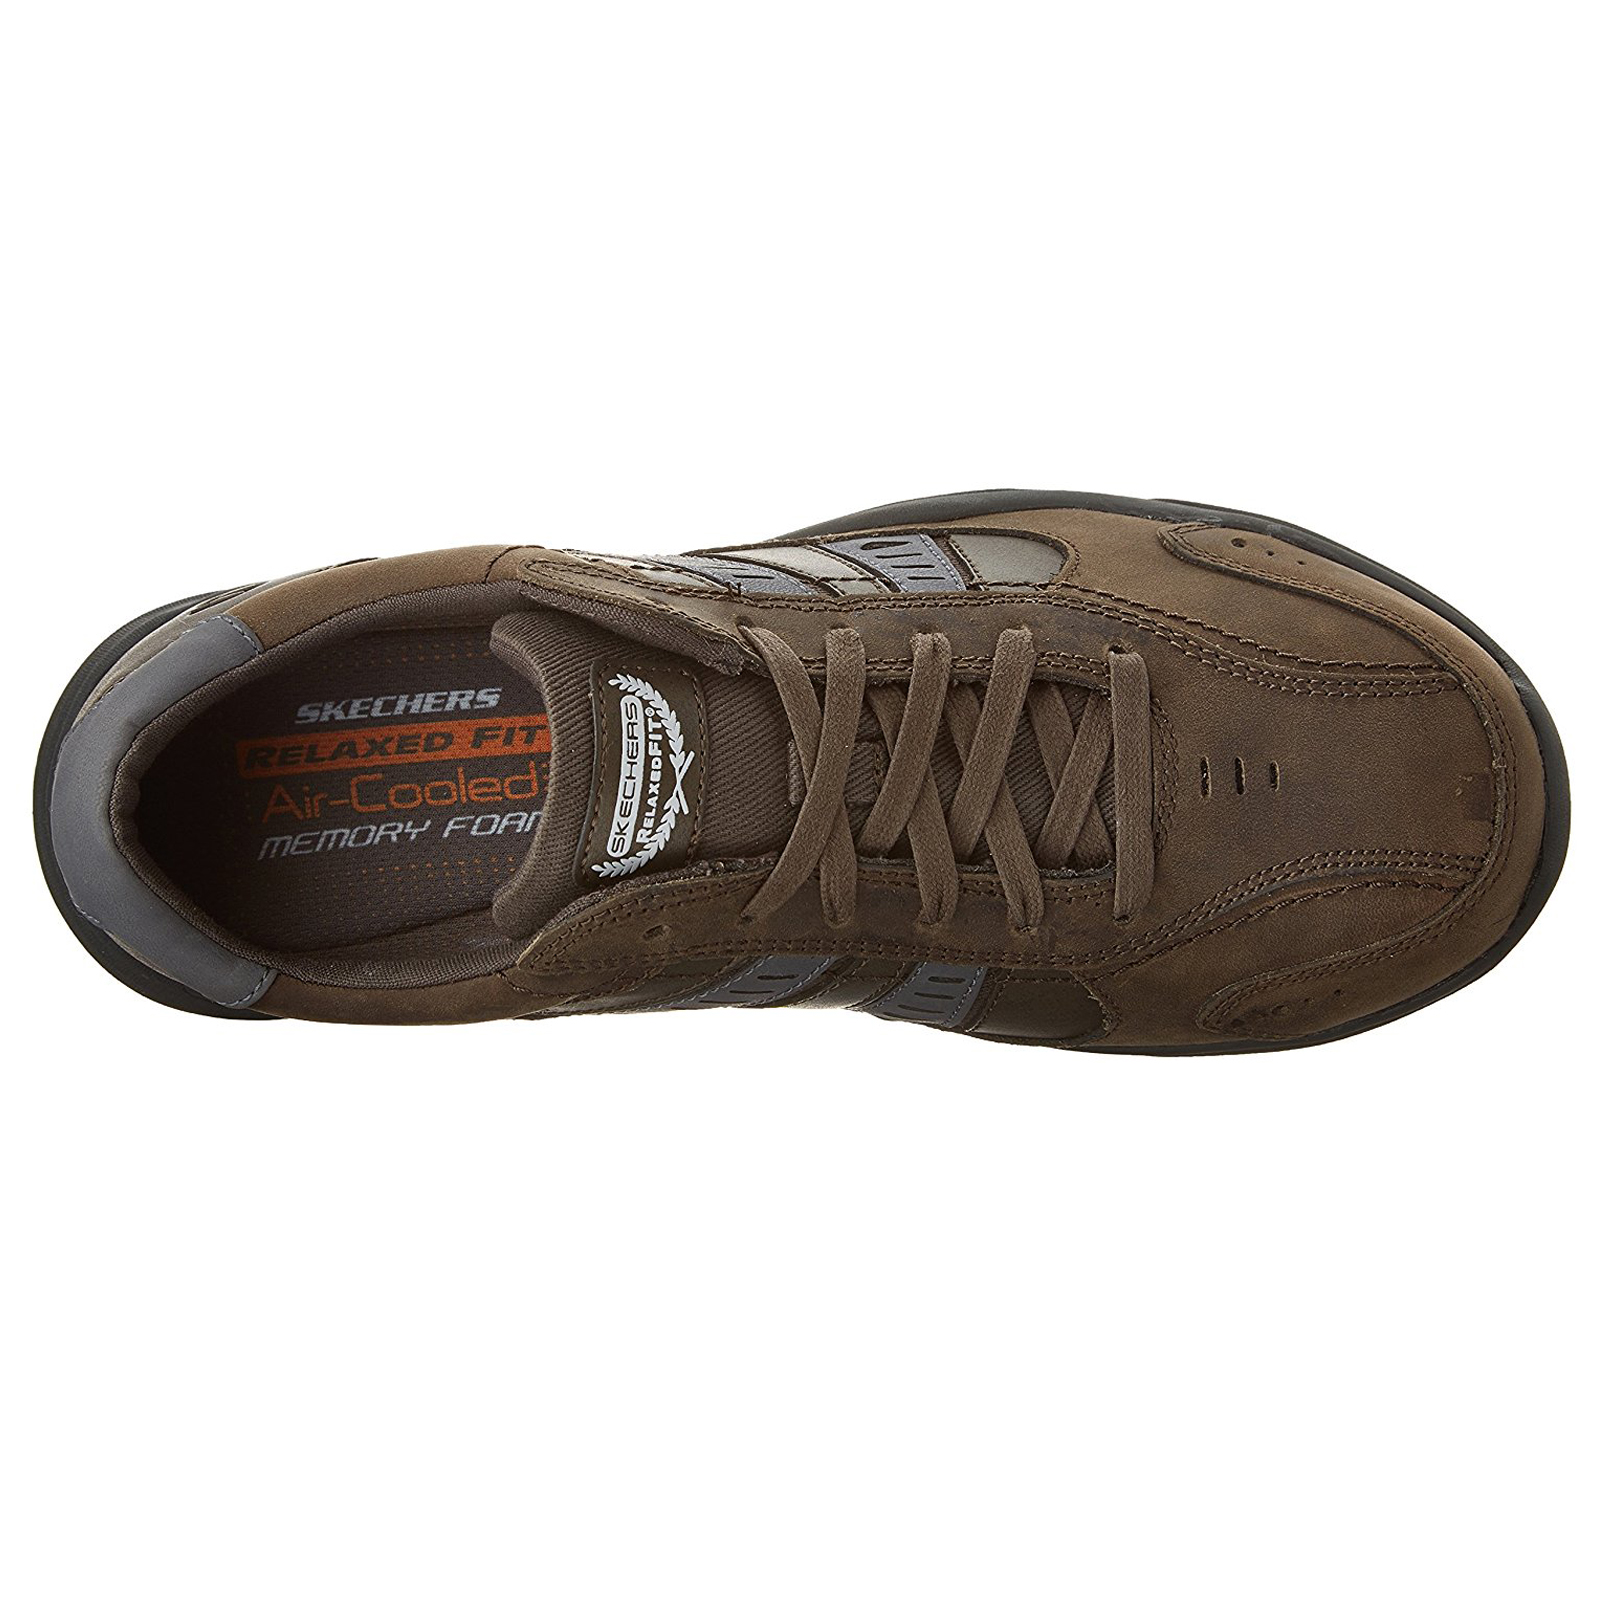 Skechers-Relaxed-Fit-Mens-Larson-Leather-Lace-Up-Memory-Foam-Trainers-Size-7-13 thumbnail 20